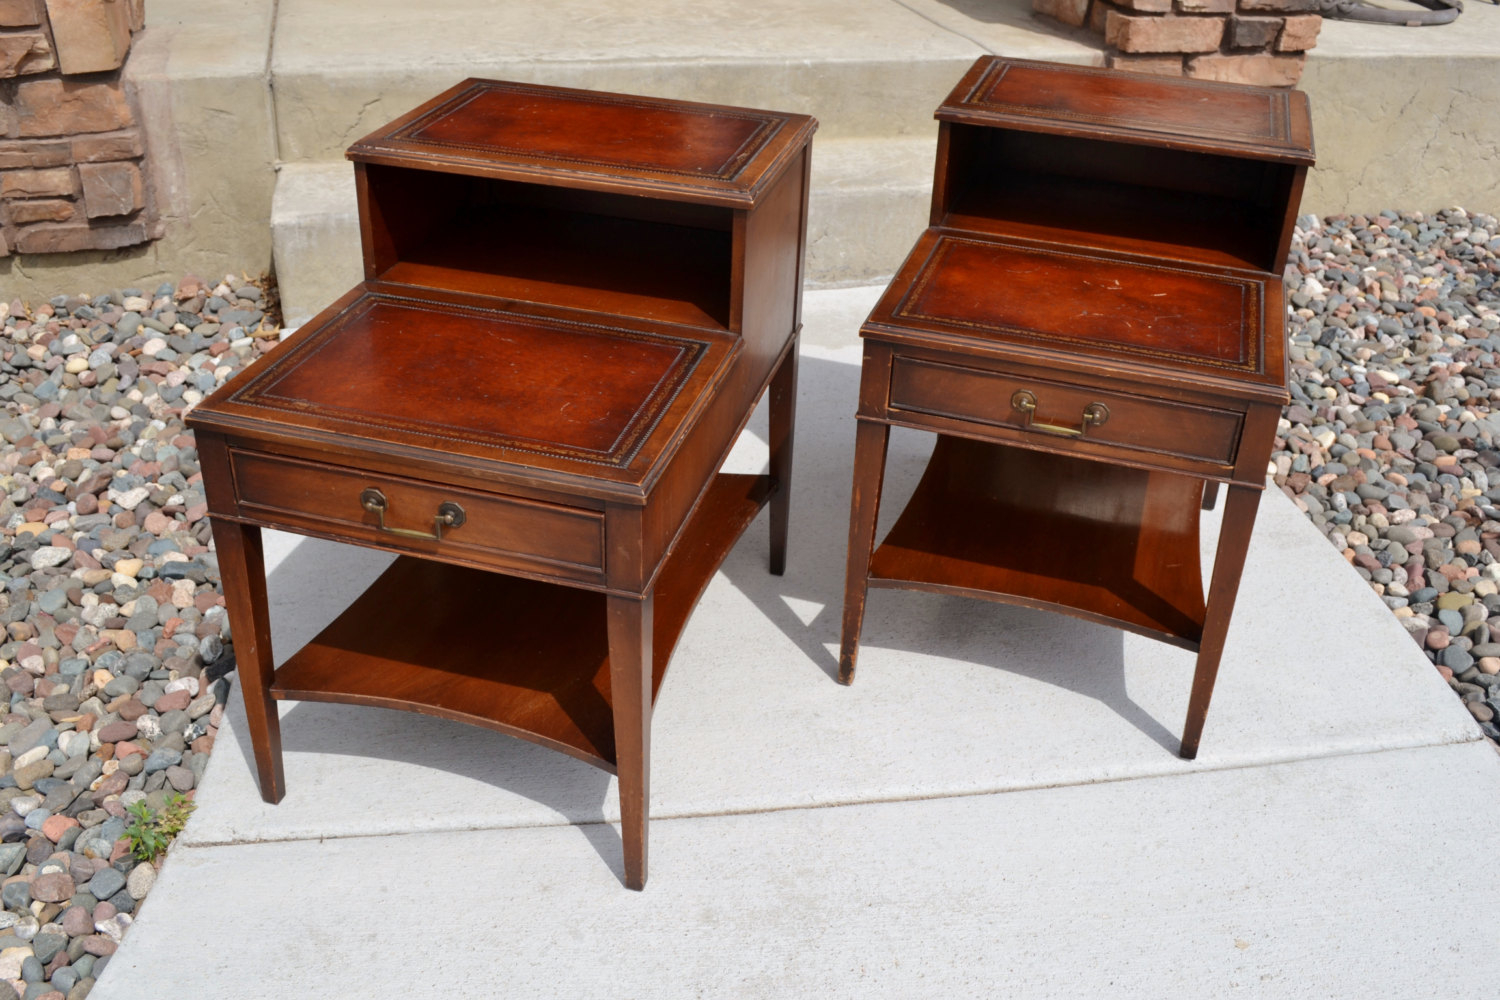 probably super free vintage round end table jockboymusic antique with drawer ideas heavenly set mahogany leather top step tables inside proportions between couches wood accent diy